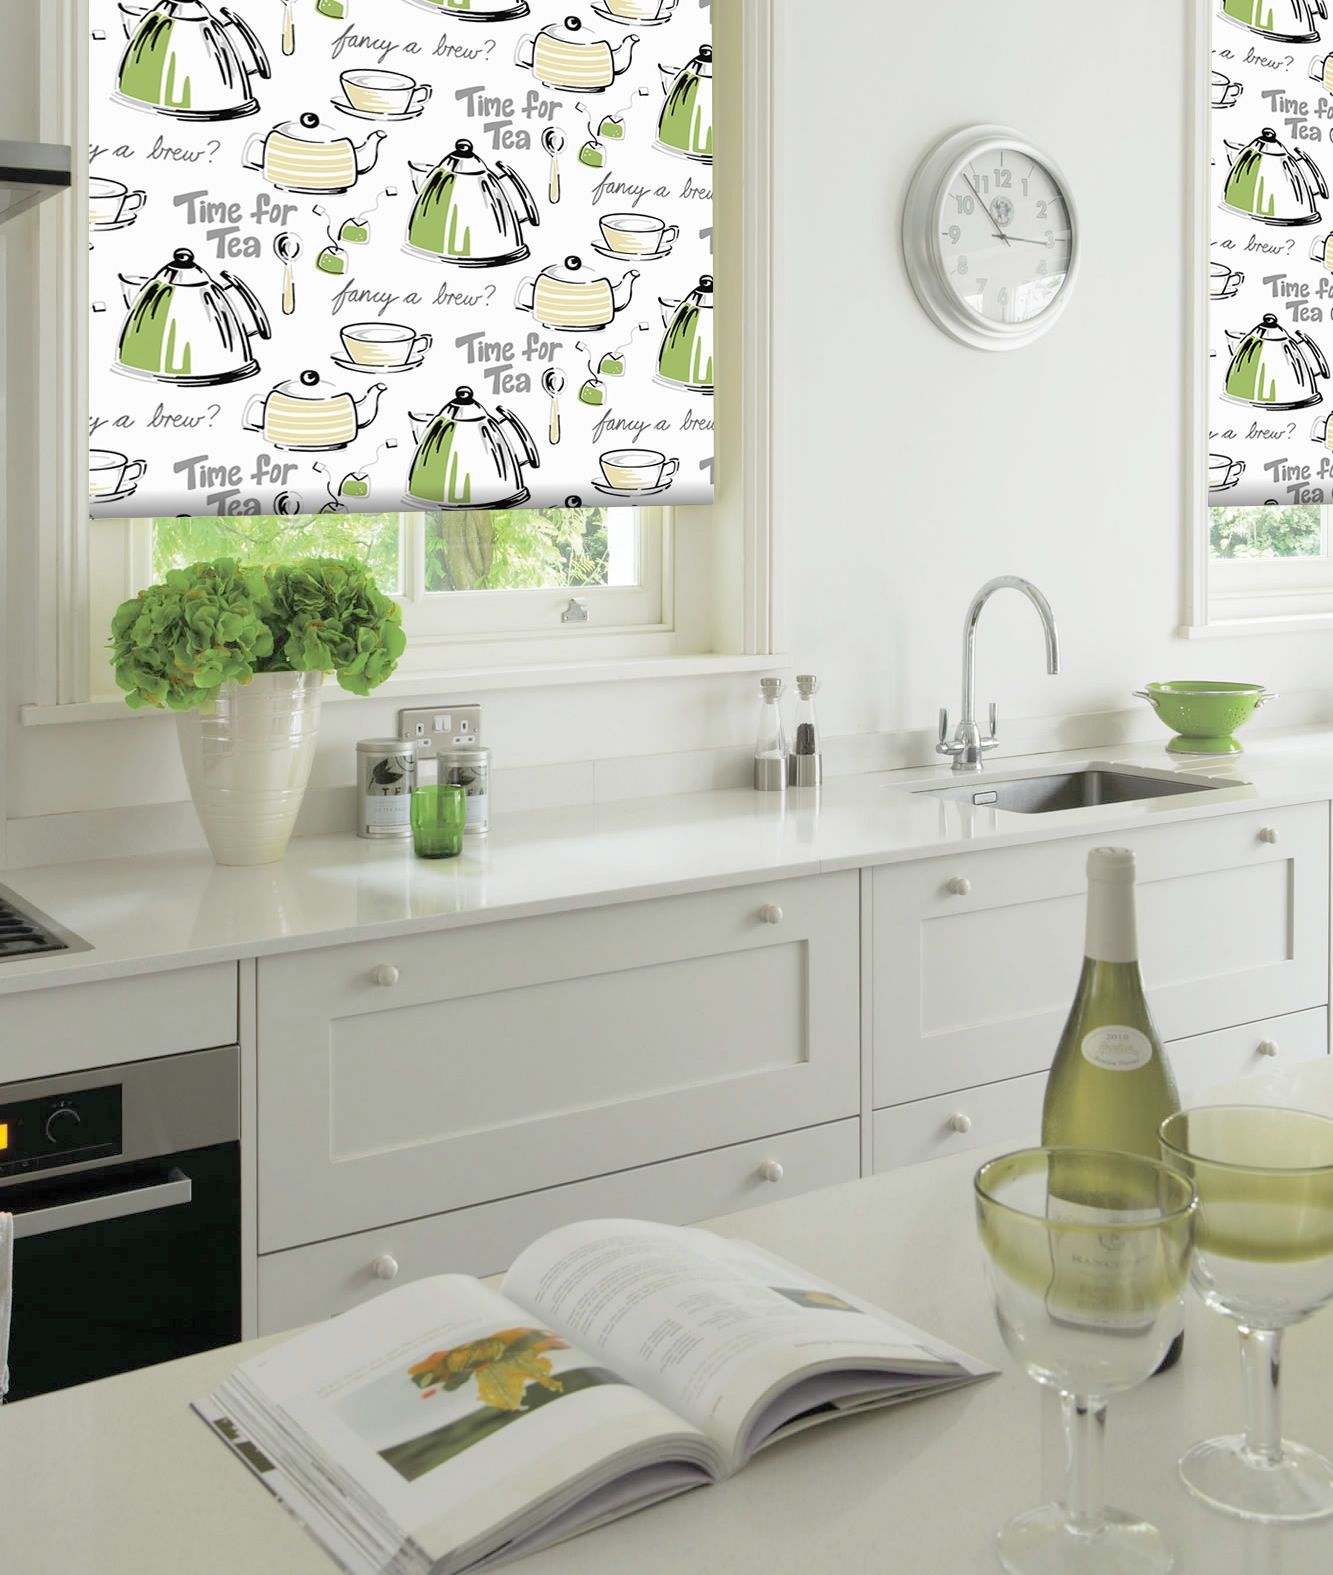 Lime Green Kitchen Blinds: Gorgeous Time For Tea Jasmine Roller Blinds. Add Some